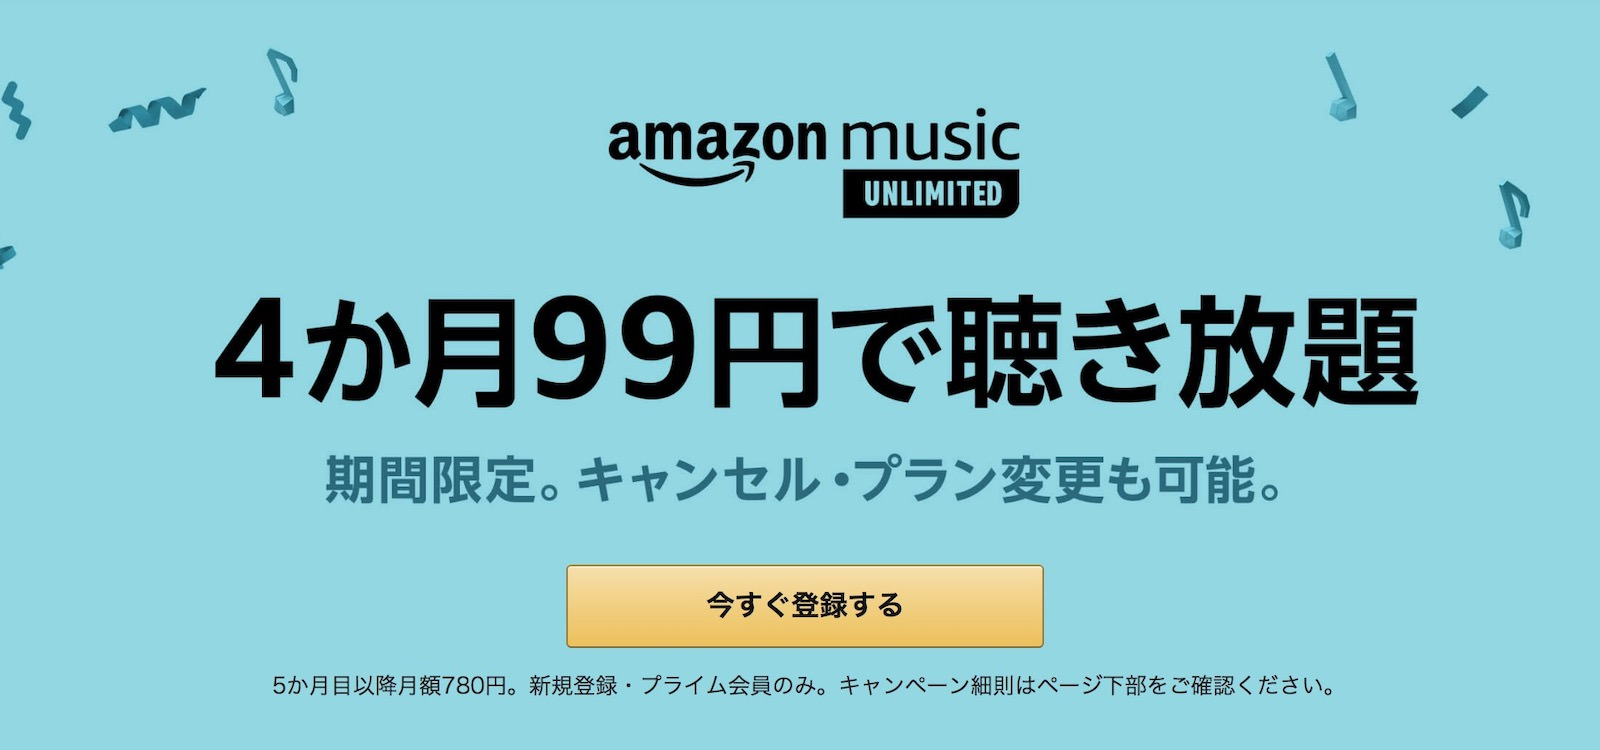 Amazon Music Unlimited Campaign